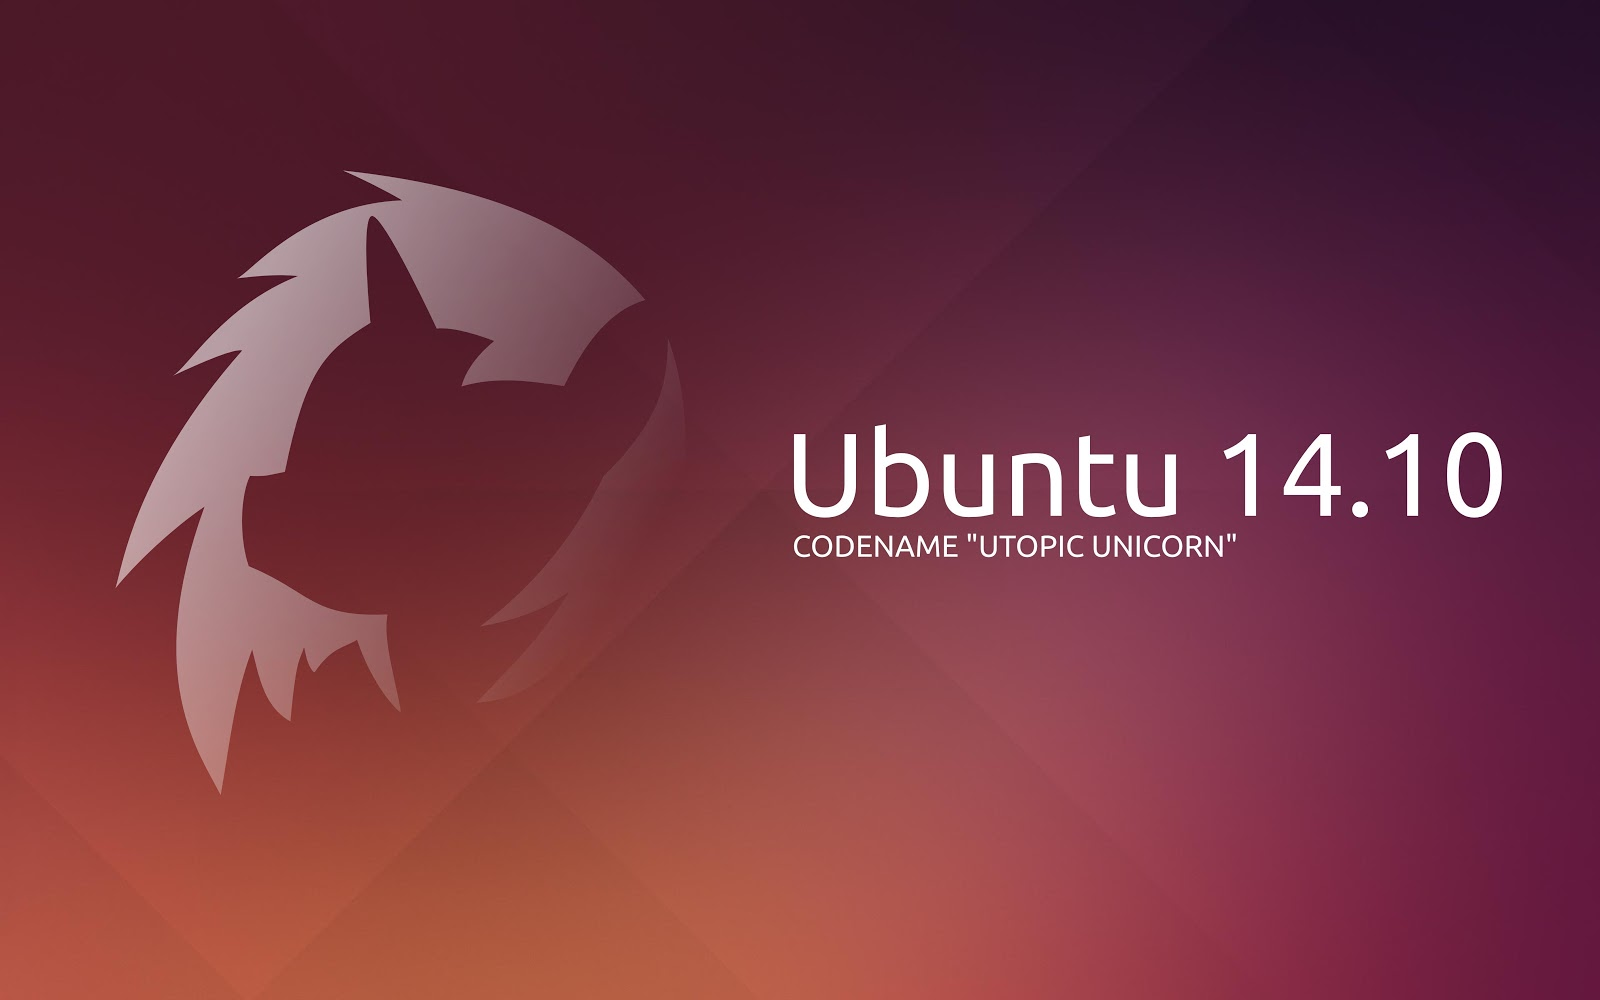 FREE! Download ISO Linux Ubuntu 14.10 Utopic Unicorn Final